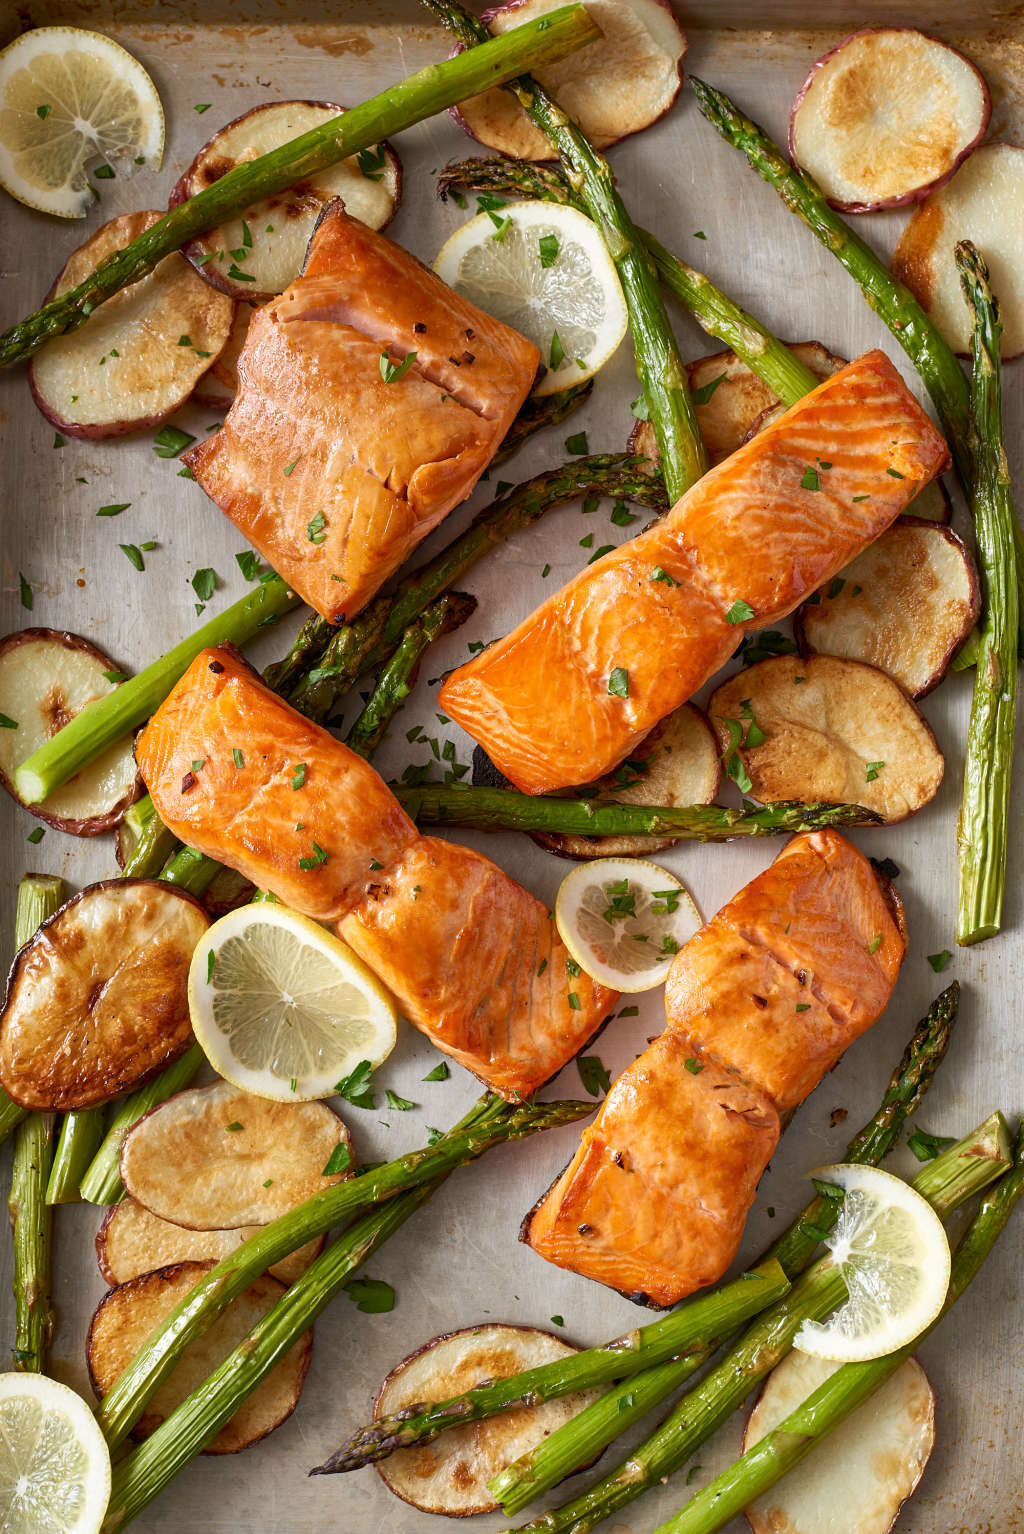 The Crispy Salmon Dinner You Can Make in Under 20 Minutes